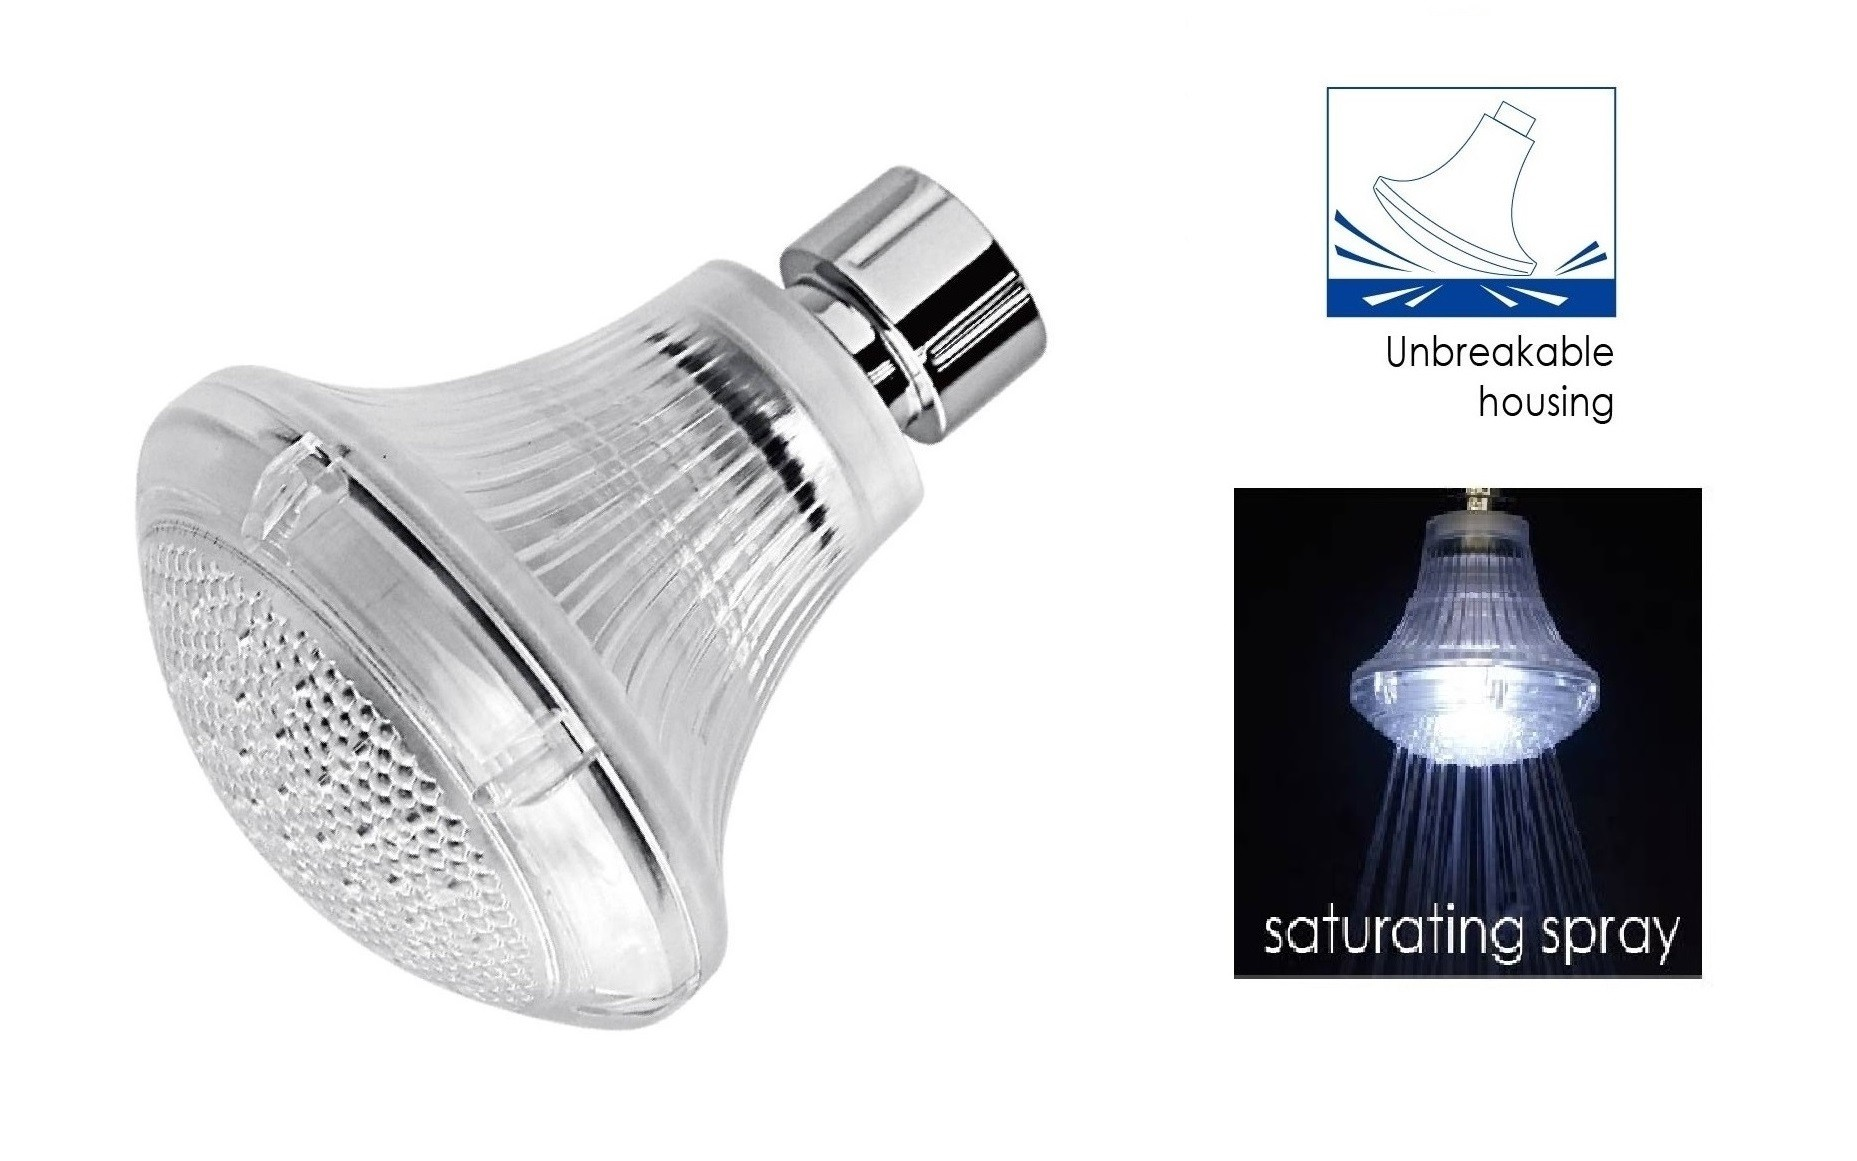 LED Lamp Showerhead